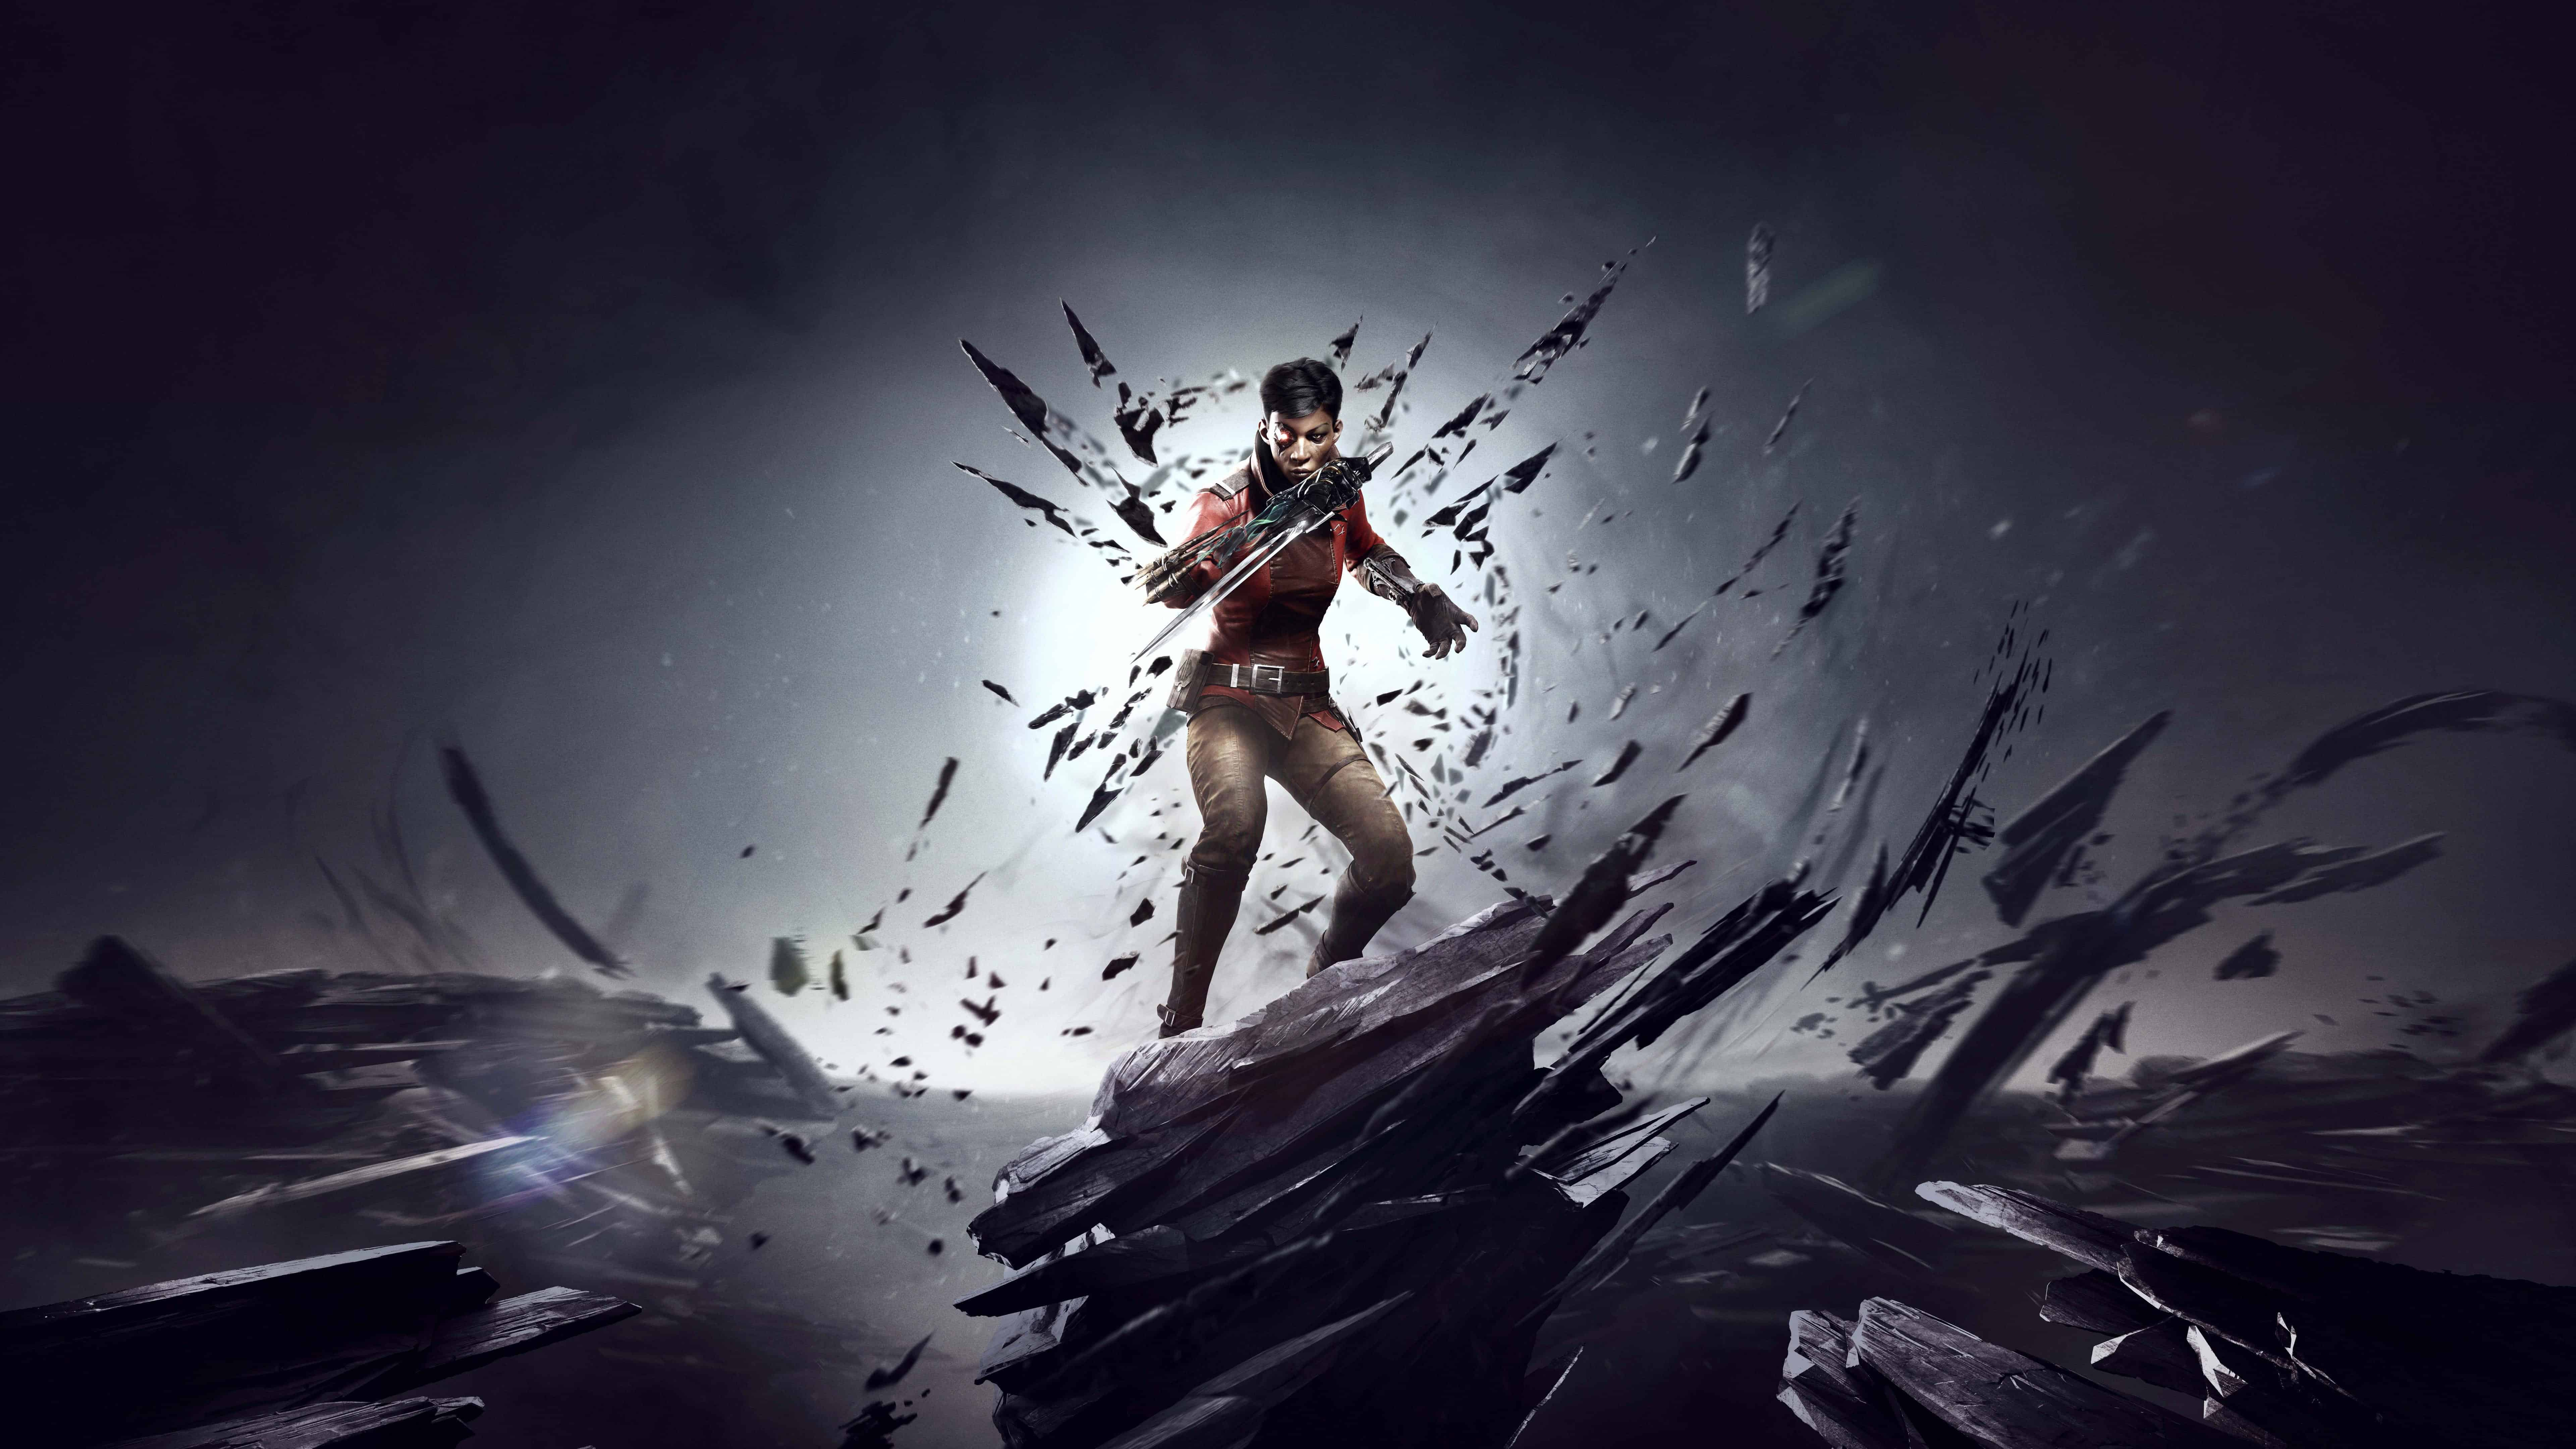 Dishonored Death Of The Outsider UHD 8K Wallpaper  Pixelz